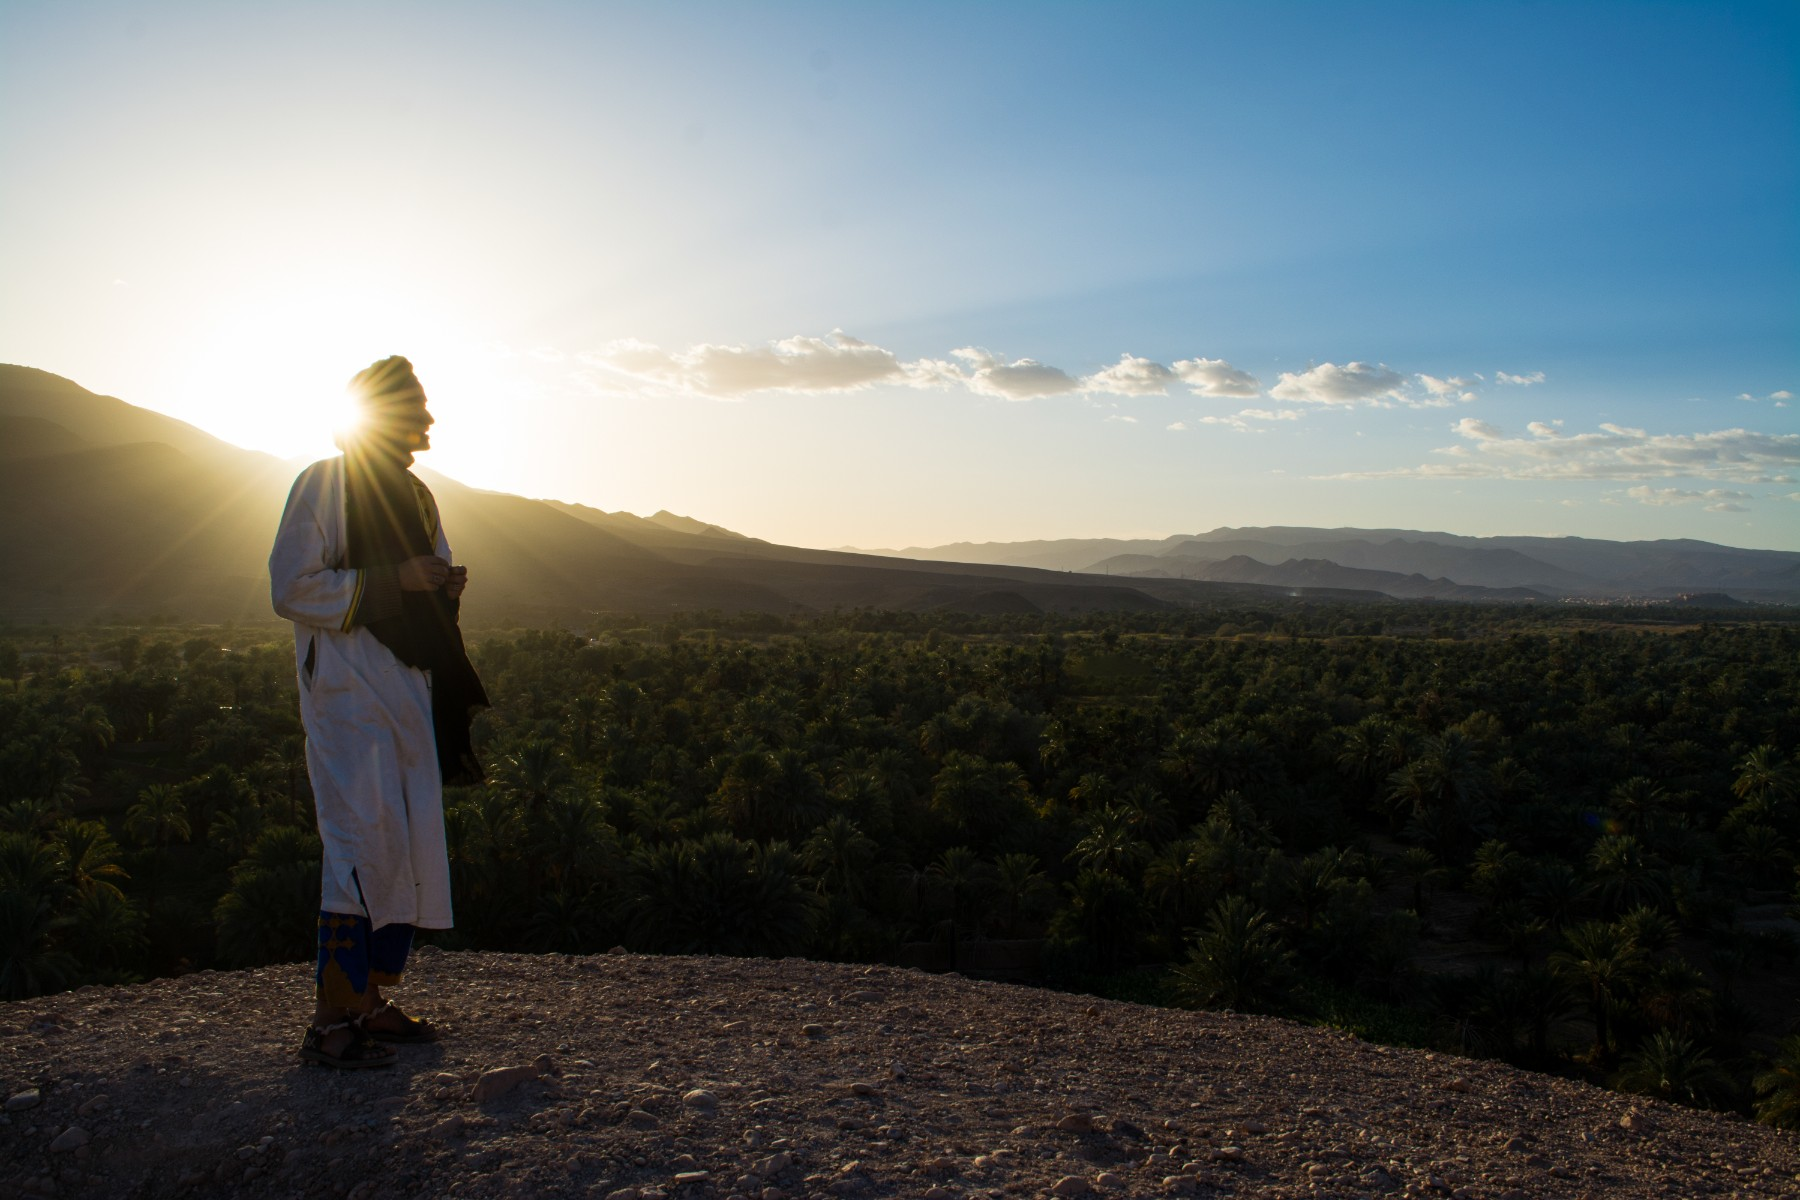 sustainable tour option in Morocco with local guides